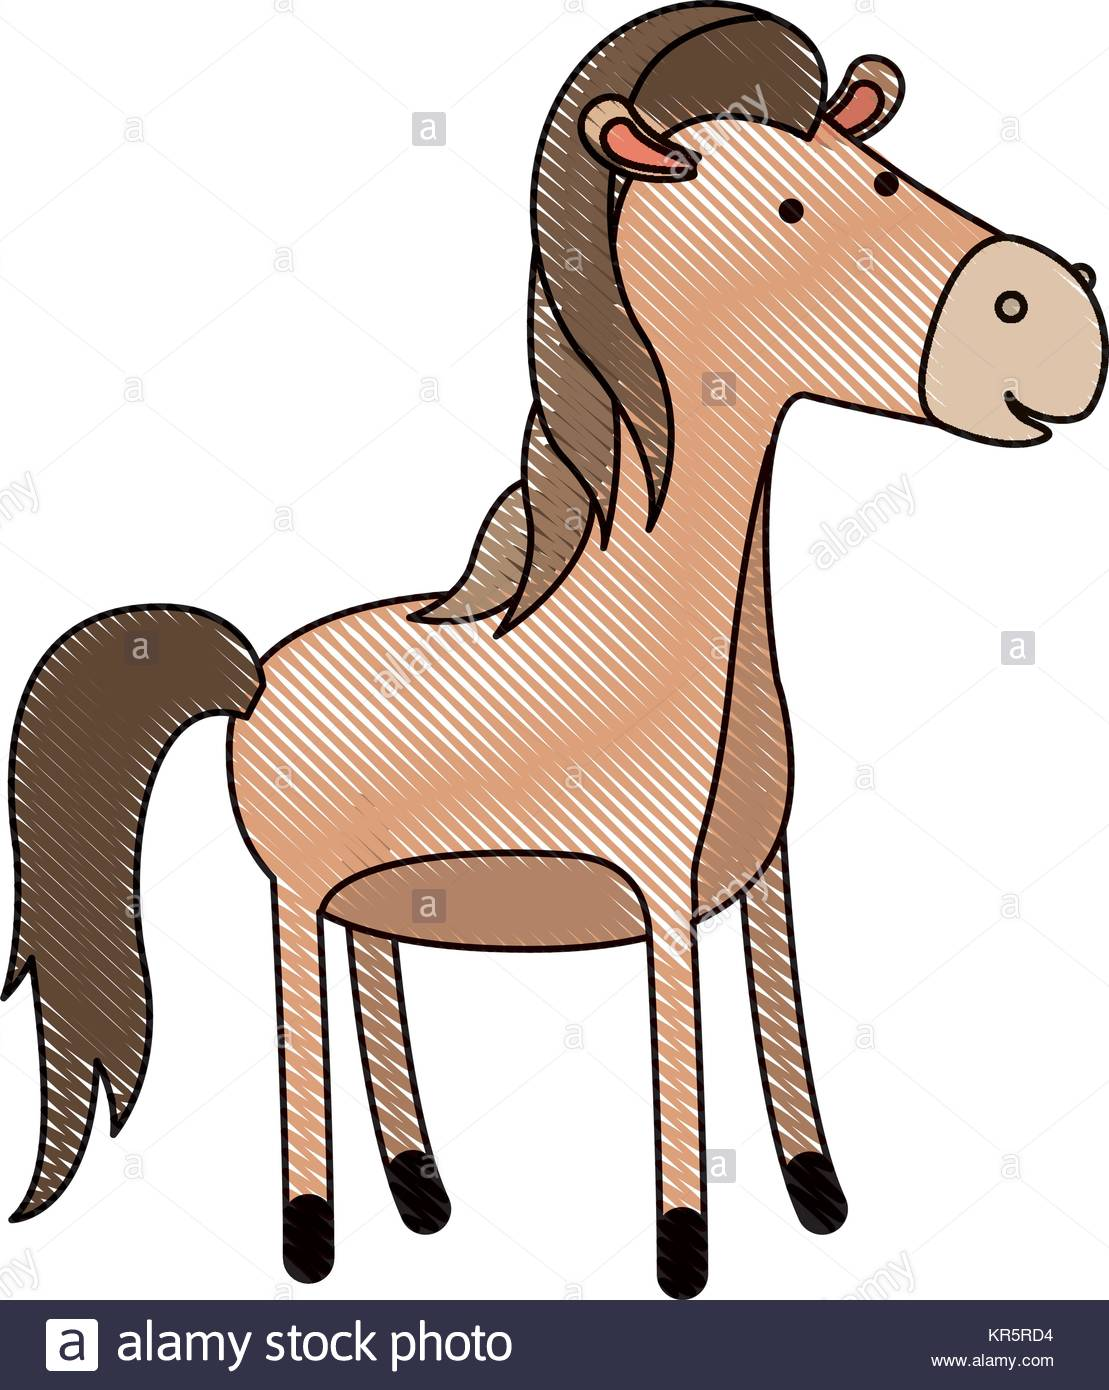 1109x1390 Horse Cartoon In Colored Crayon Silhouette With Black Contour